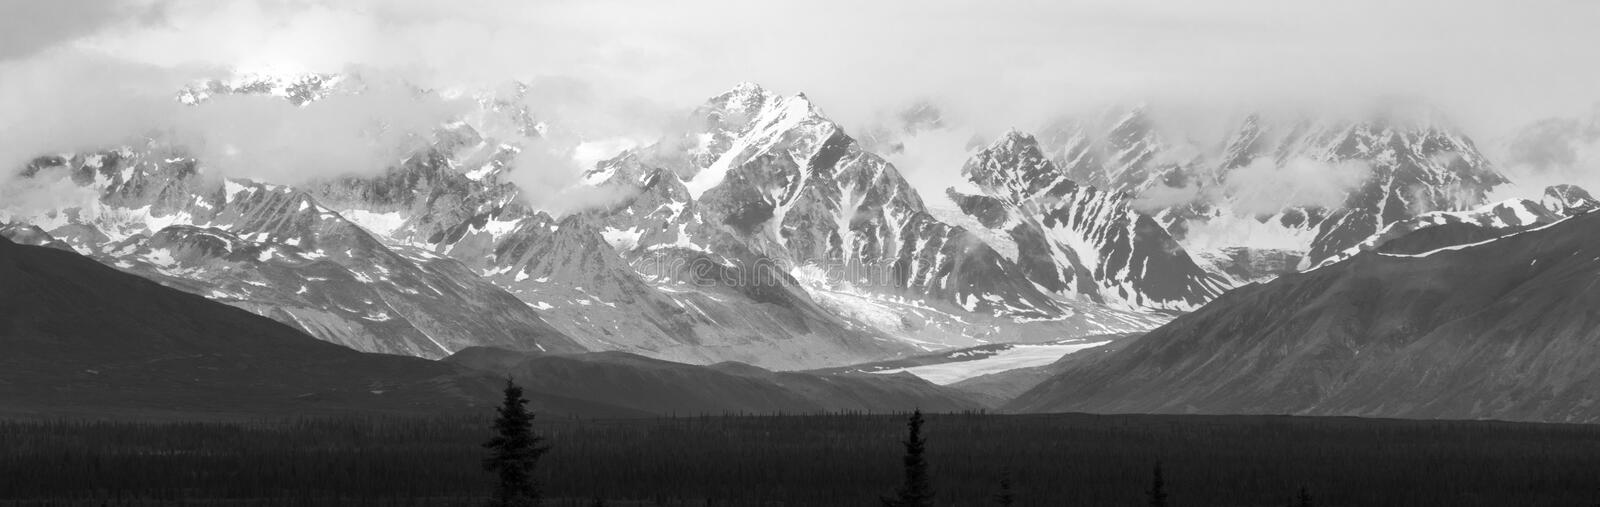 Black and White Alaskan Peaks royalty free stock images